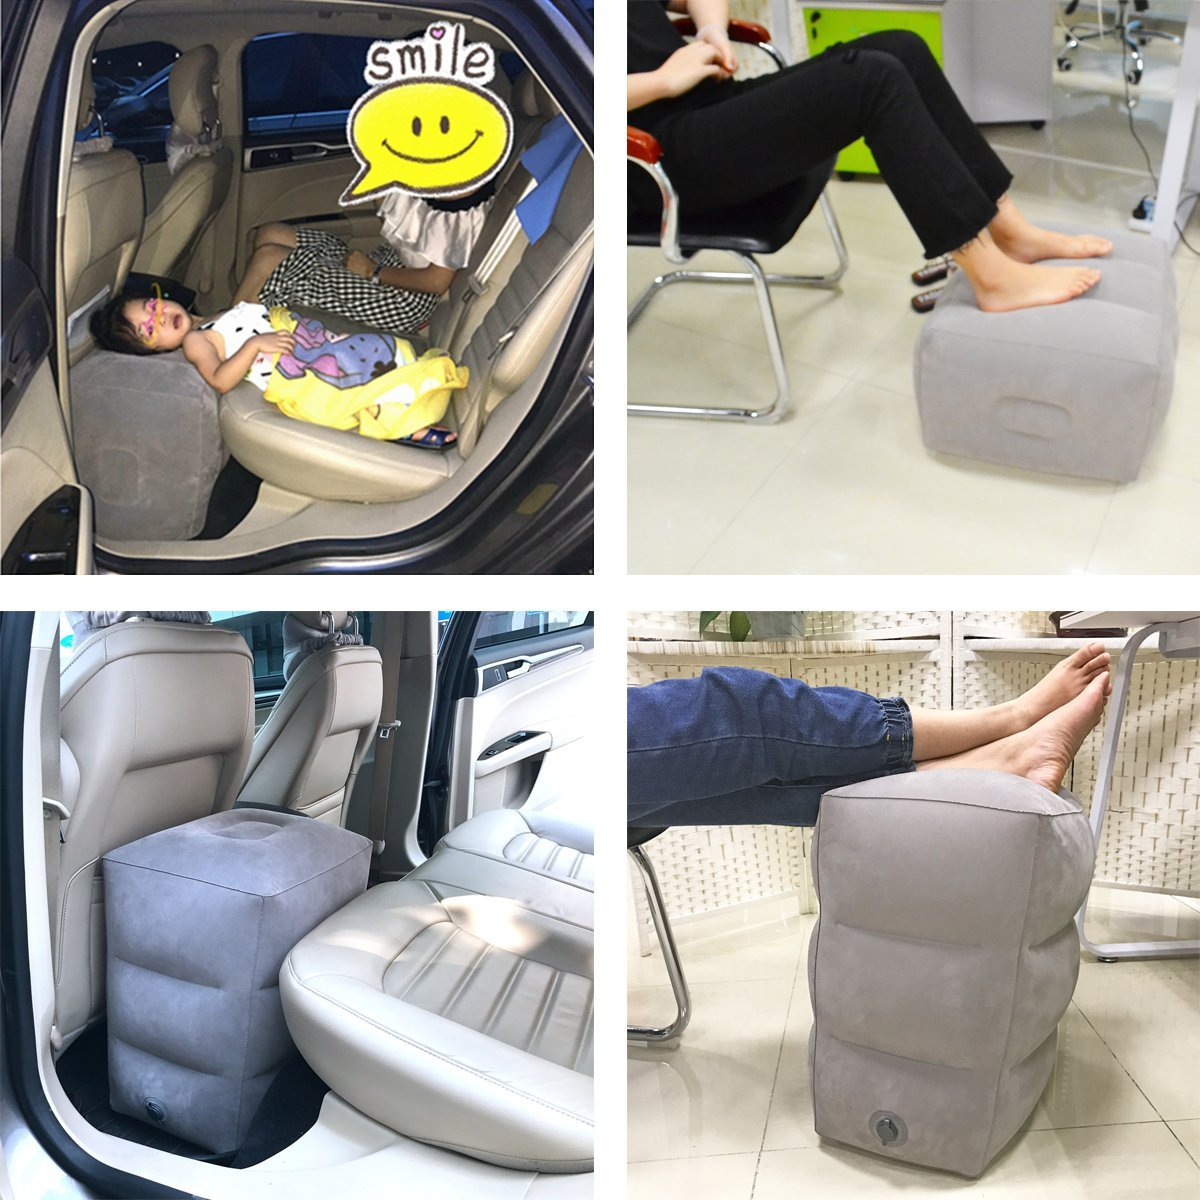 Inflatable Travel Pillow for Foot Rest on Airplanes and Kids to Sleep on Long Flights 9